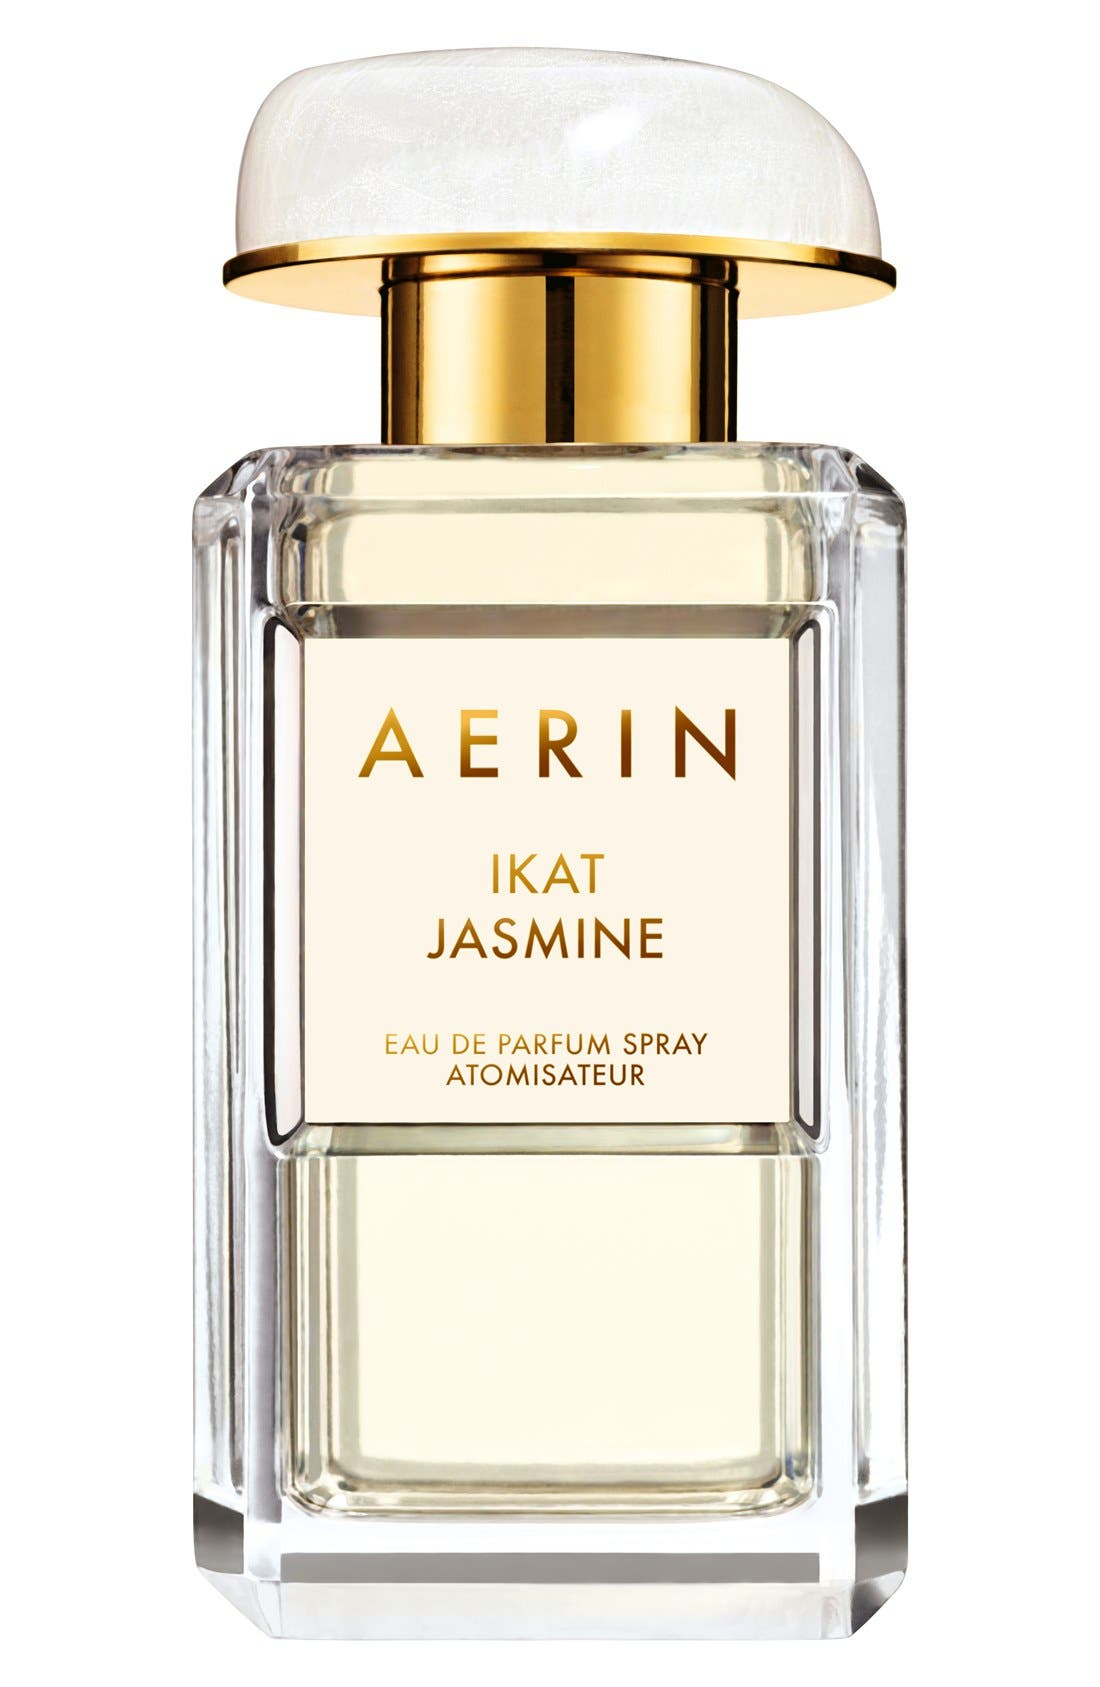 AERIN Beauty Ikat Jasmine Eau de Parfum Spray,                             Main thumbnail 1, color,                             NO COLOR